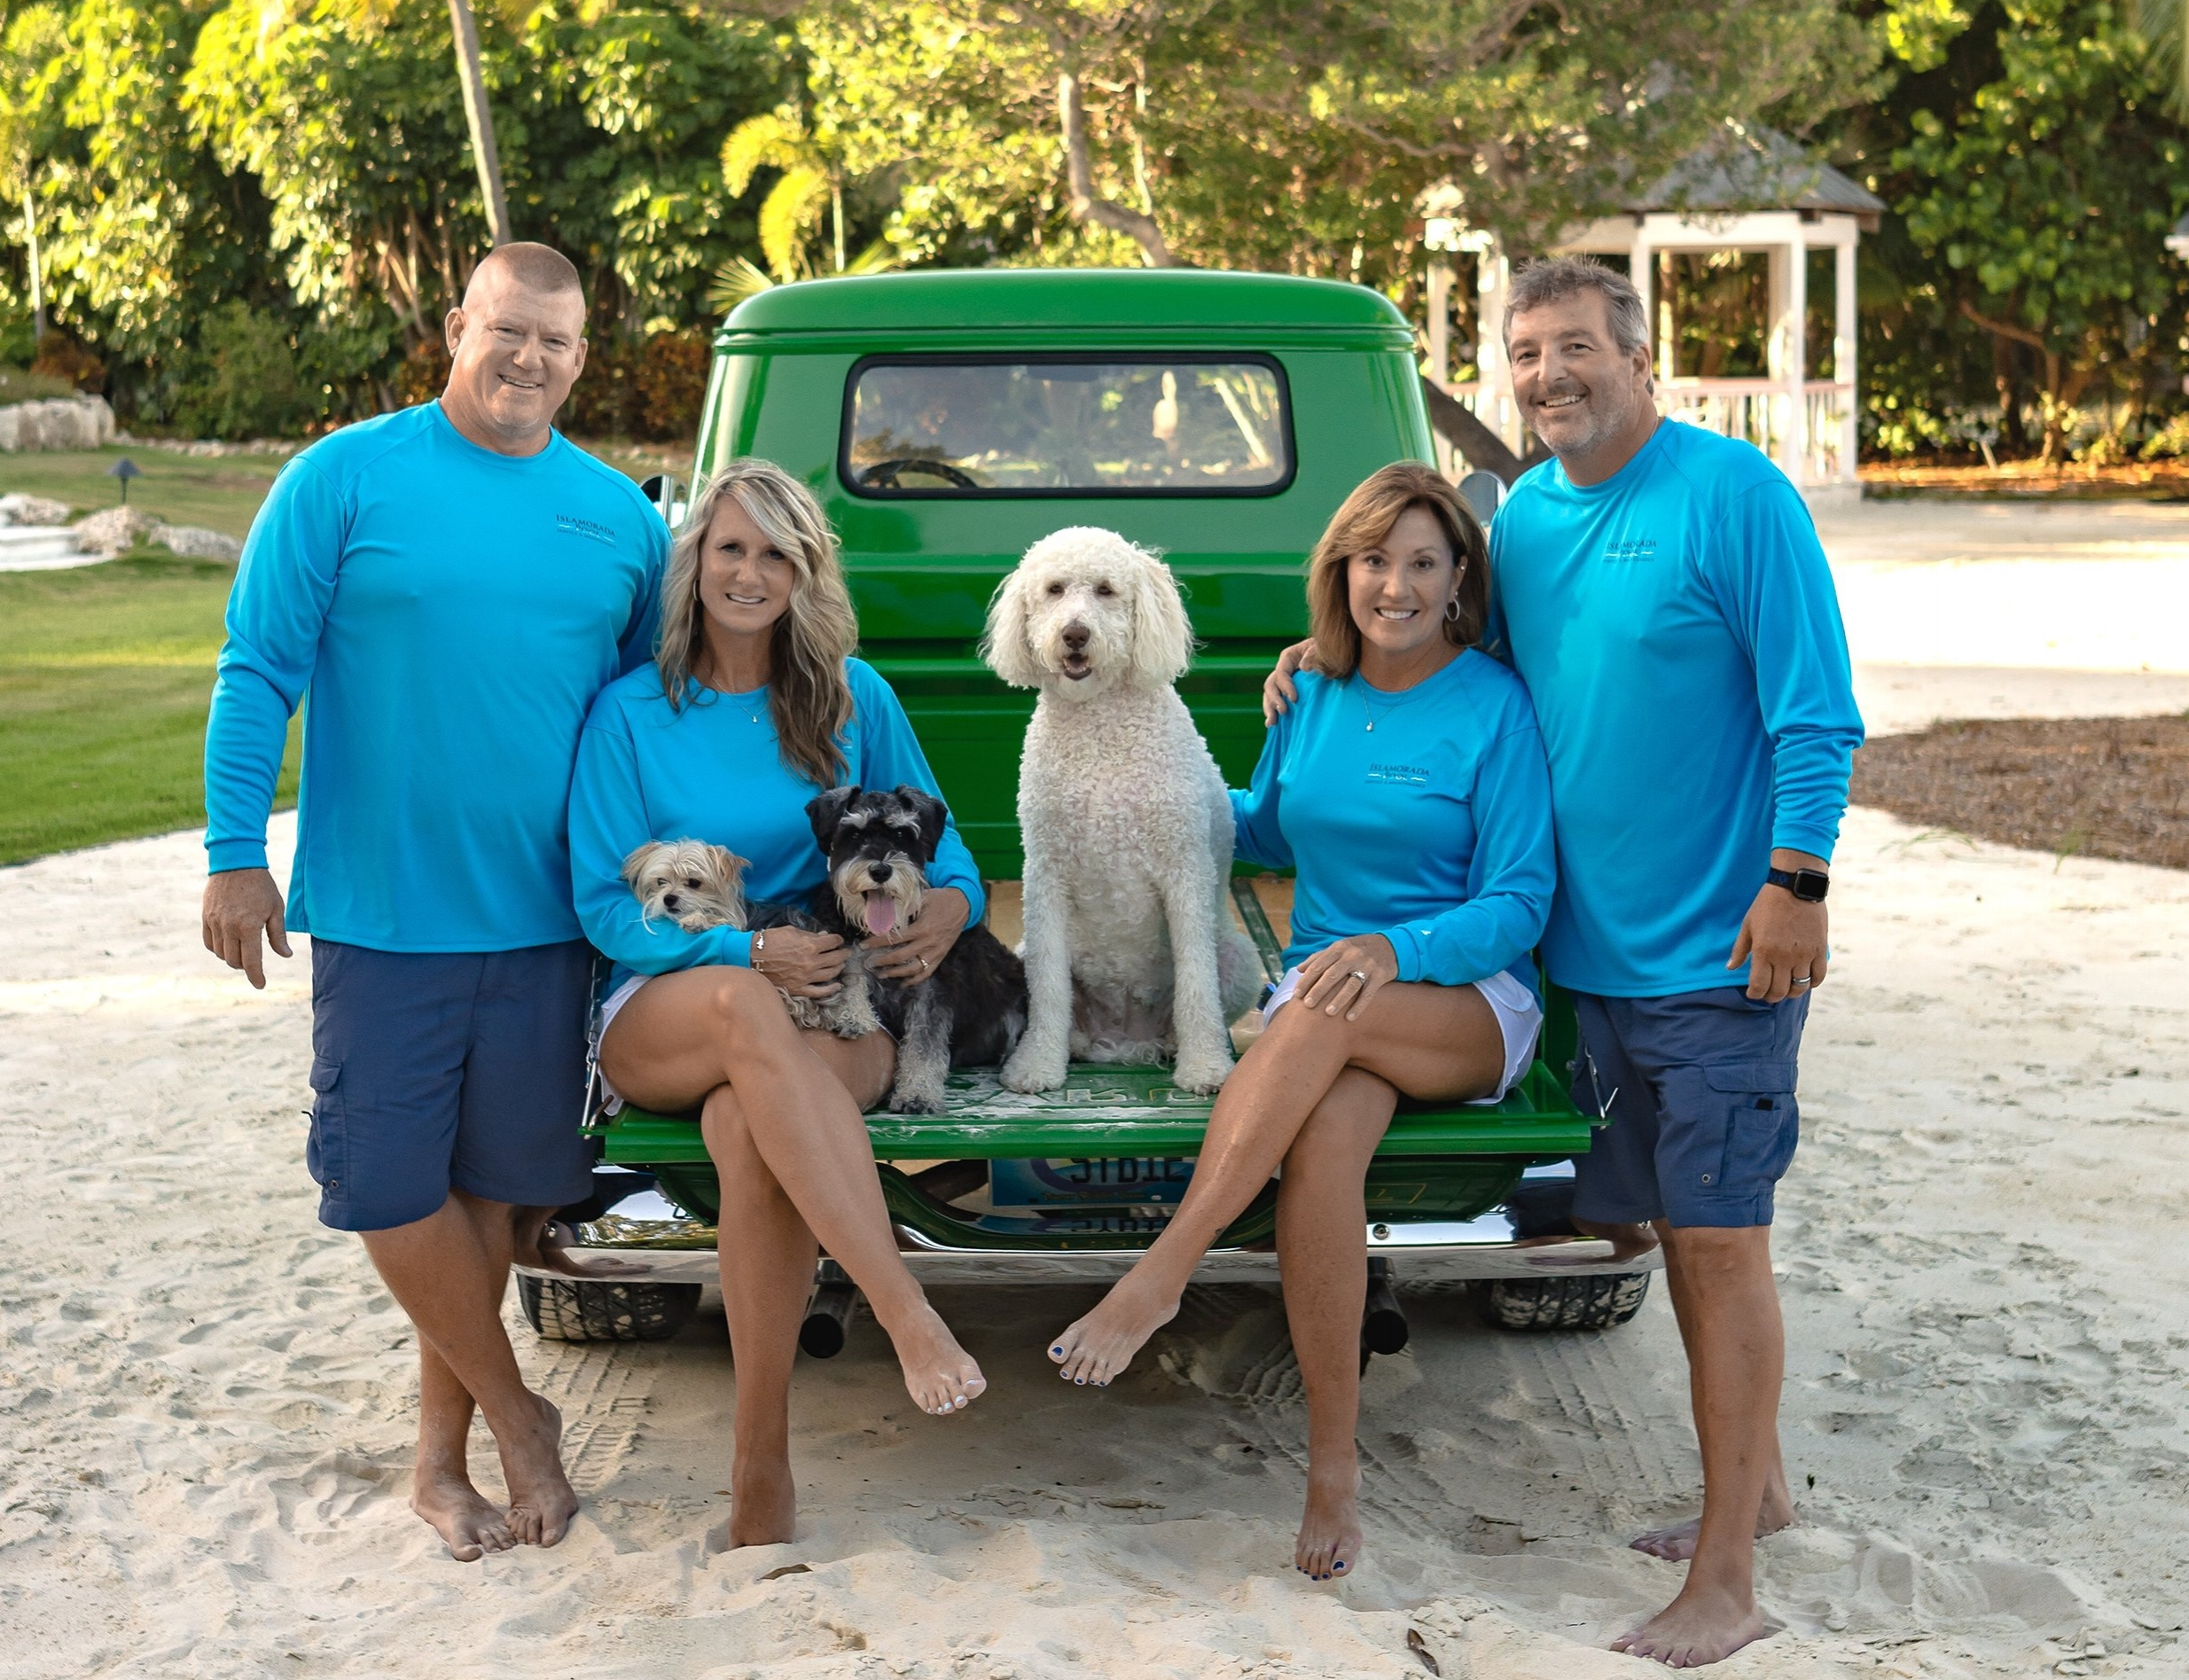 (Left to Right) Roger & Tiffany Williams,Jenny & Dan Dillon and dogs: Ellie, Knox and Belle